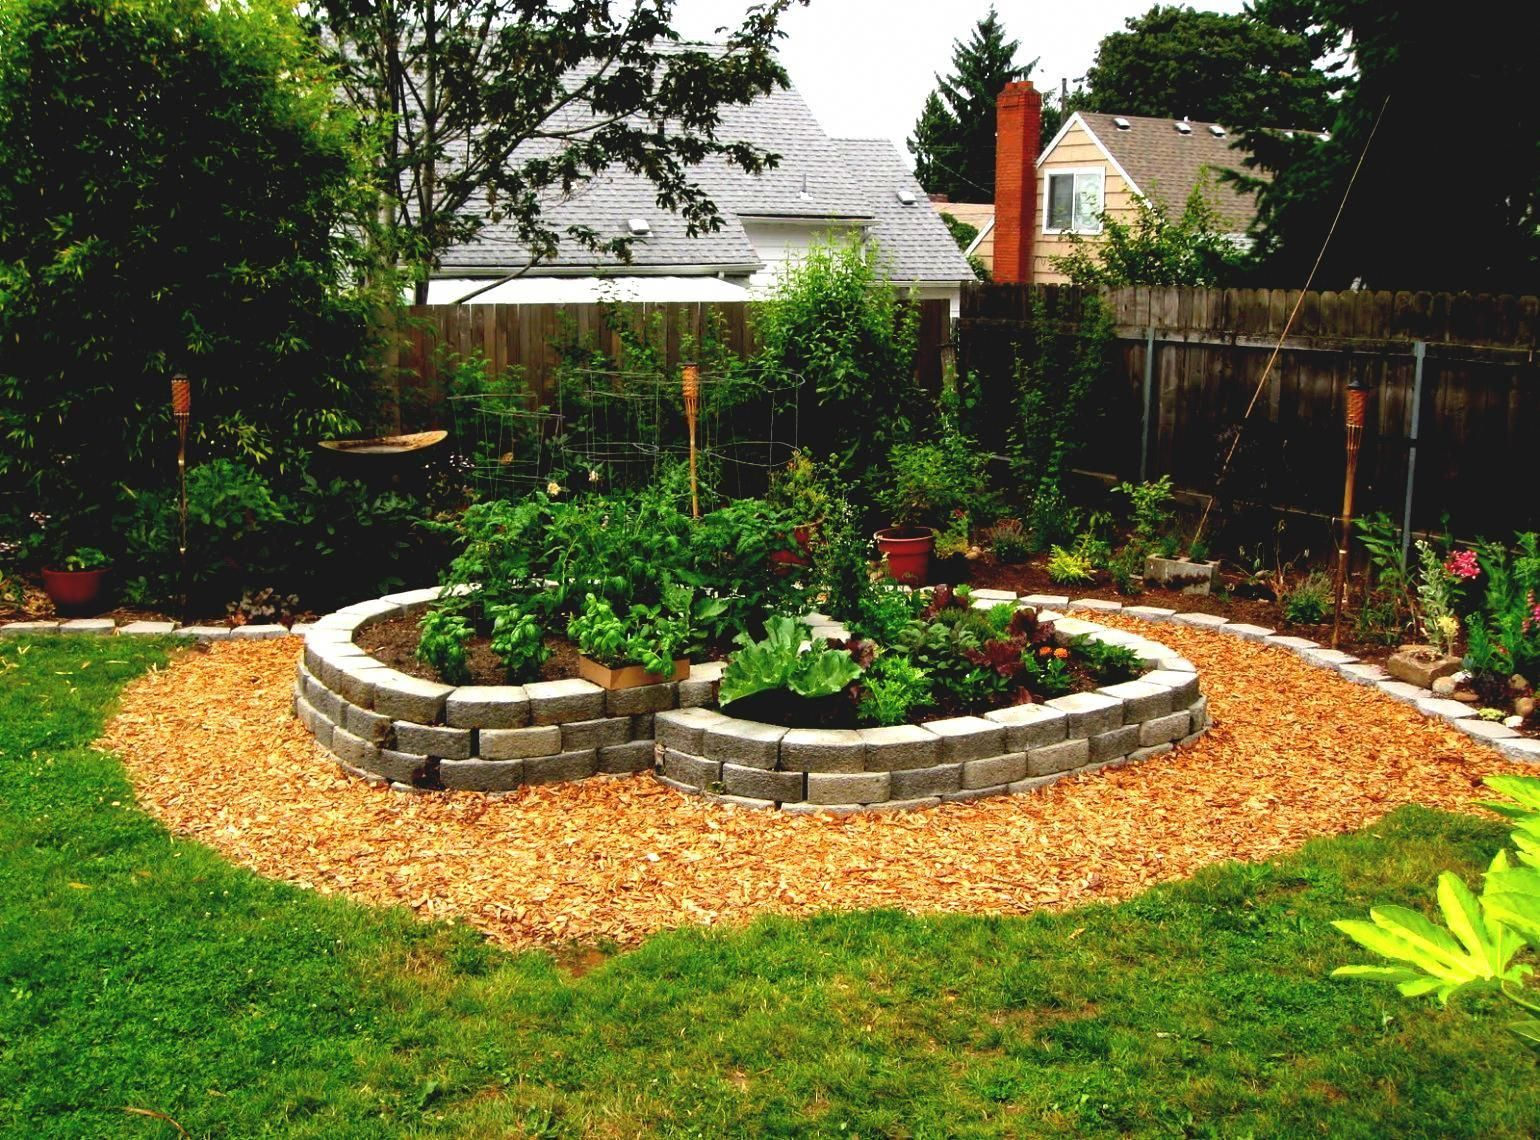 Modern Garden Design Flower Bed Ideas Small Front Yard Landscaping Garden In Fro Bed D Front House Landscaping Easy Landscaping Front Yard Landscaping